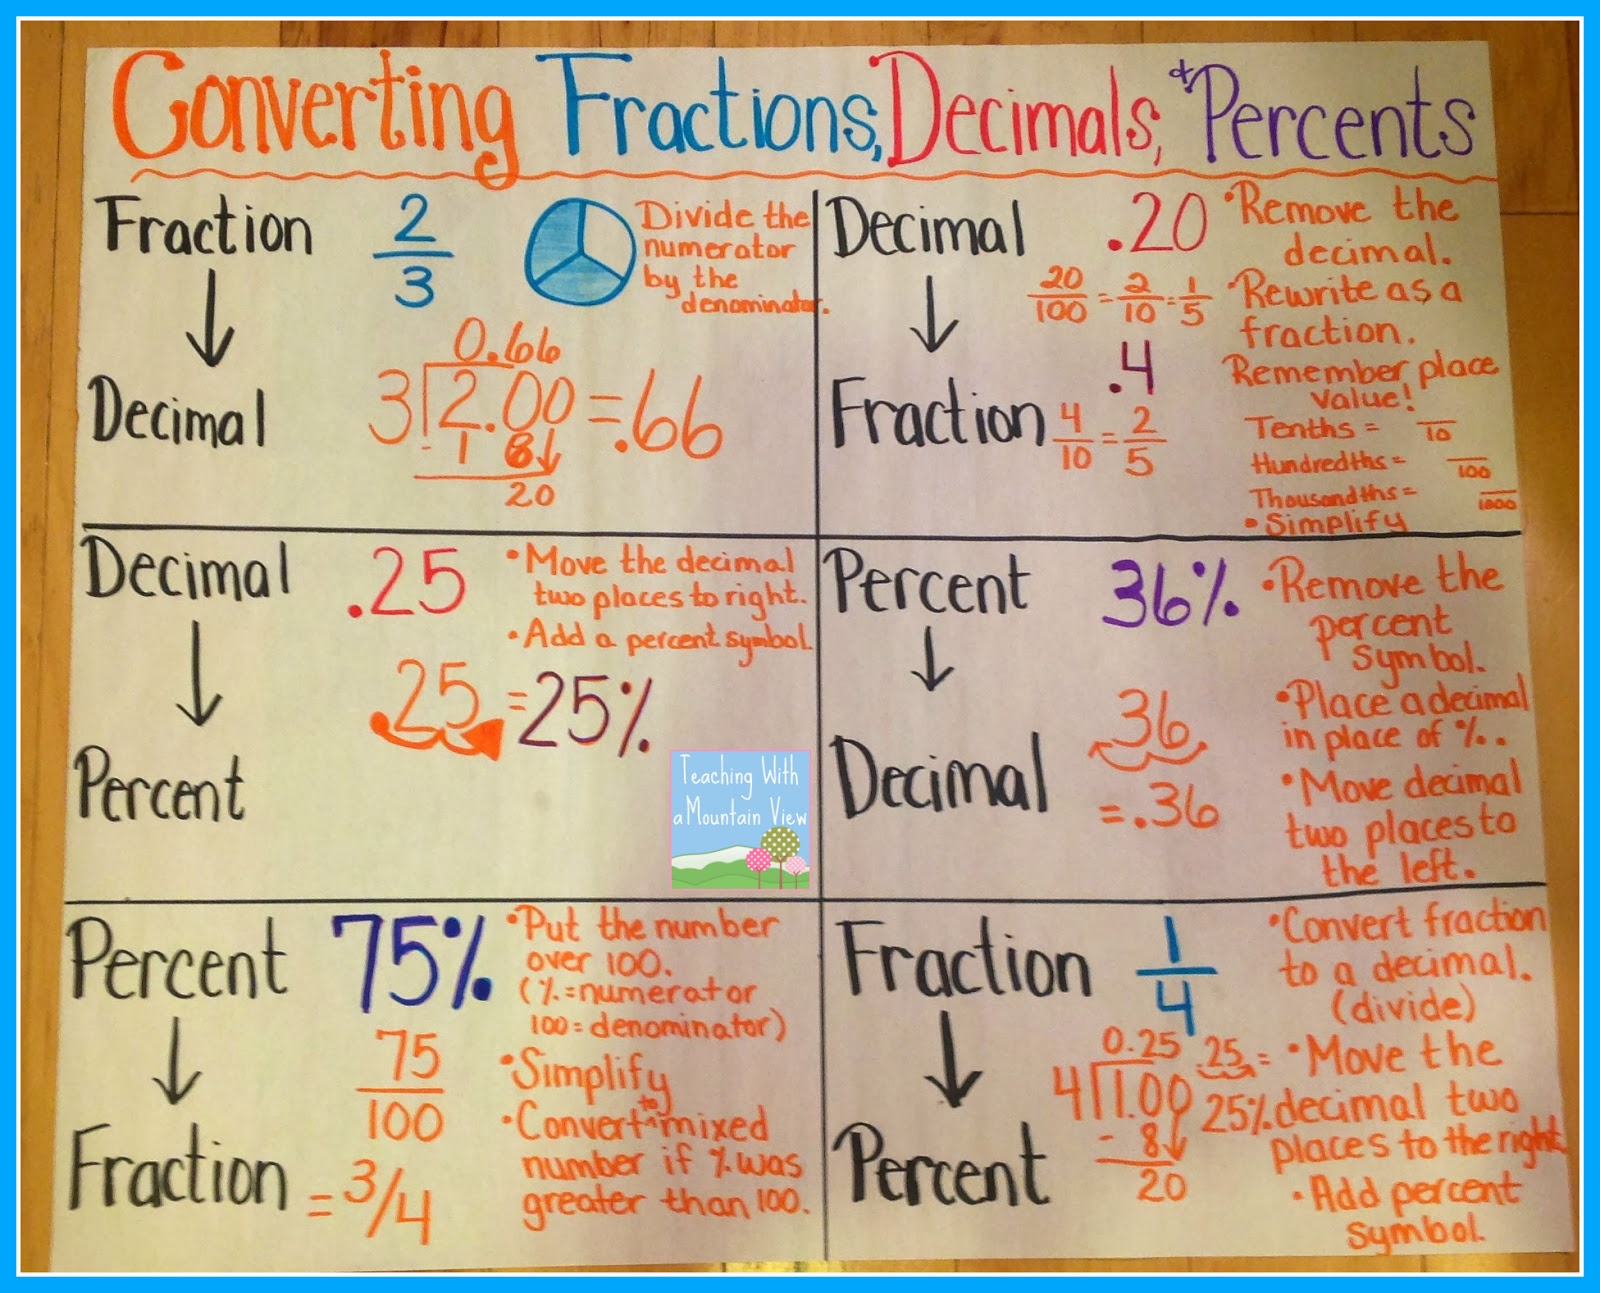 medium resolution of Percentages Fractions And Decimals Worksheet   Printable Worksheets and  Activities for Teachers